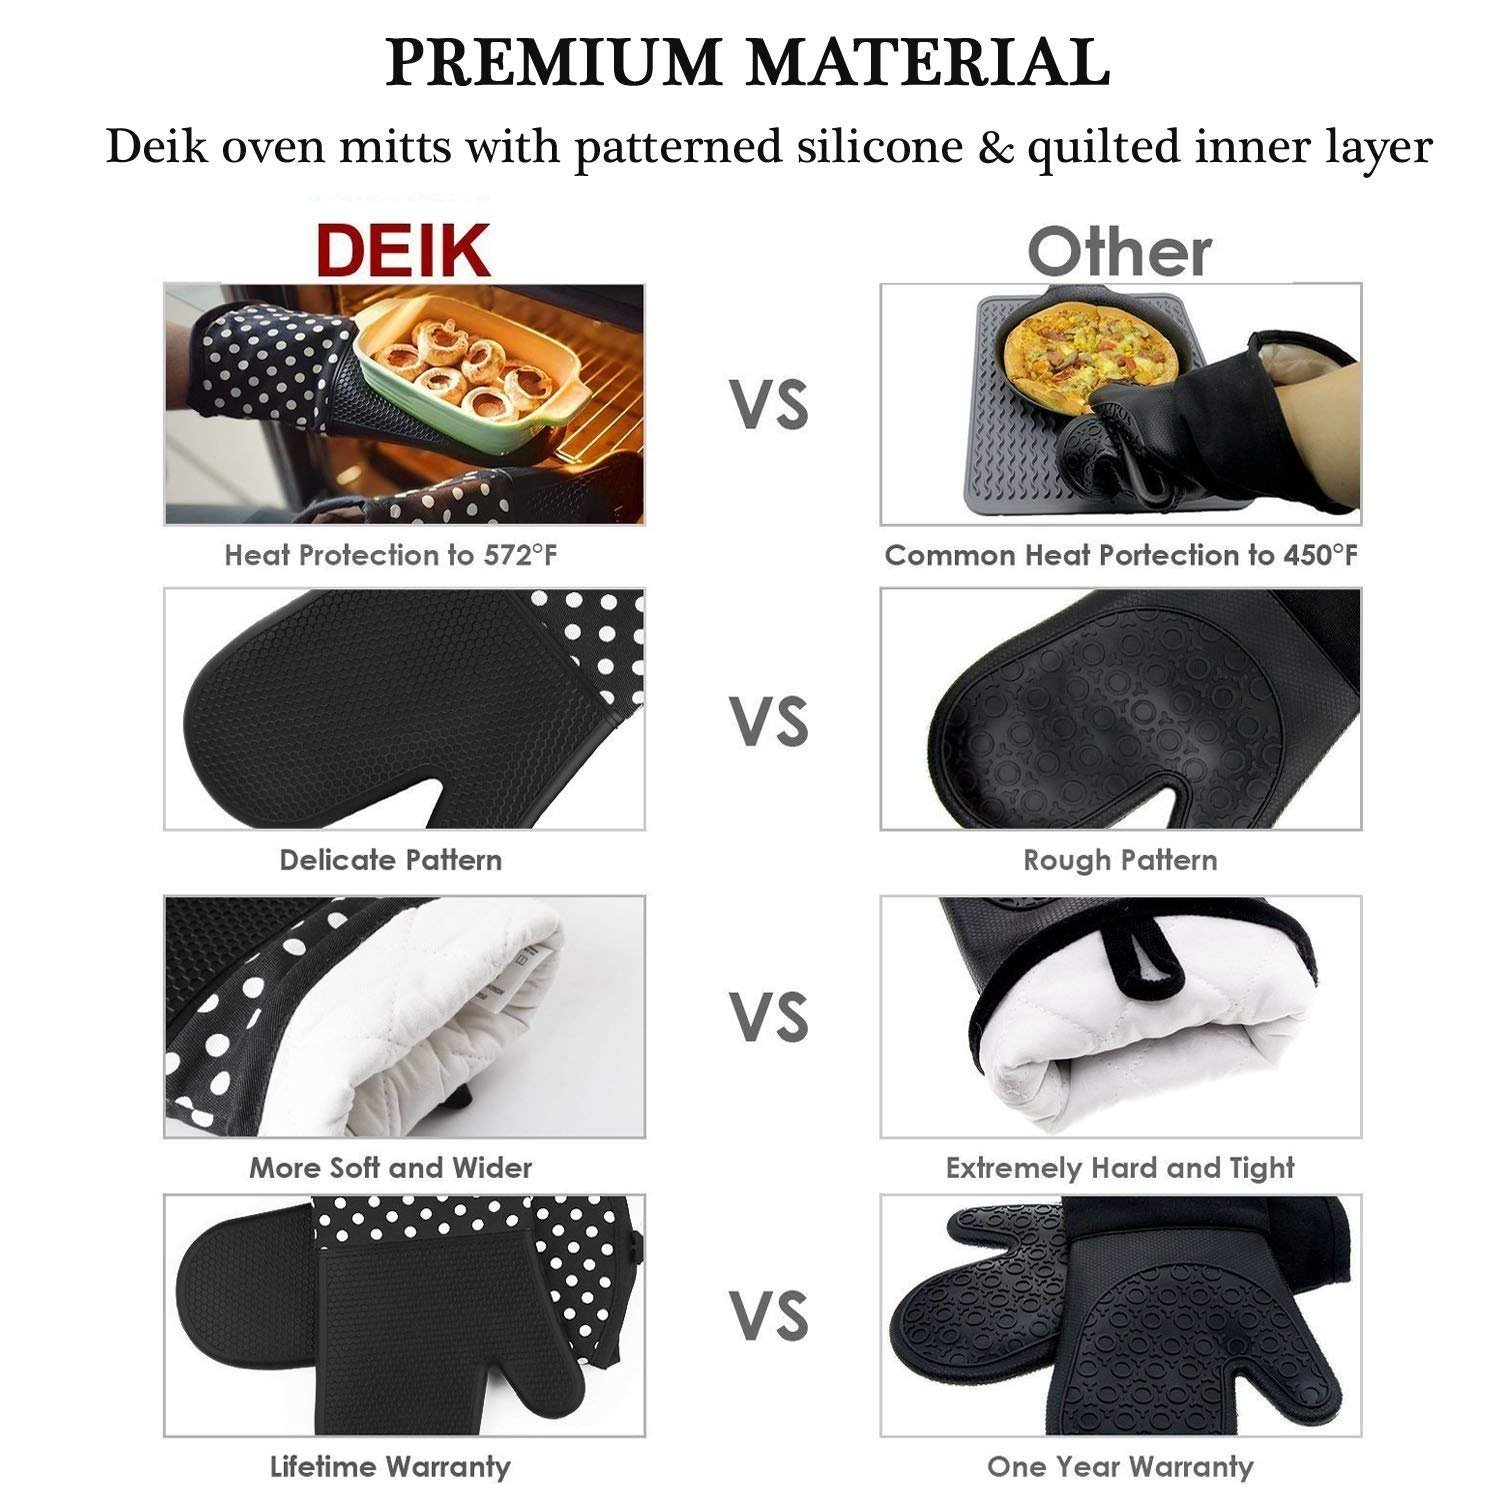 Deik Silicone Oven Mitts - Heat Resistant to 572 °F Kitchen Oven Gloves for Cooking, Baking, Barbebue Potholder, 1 Pair, Black